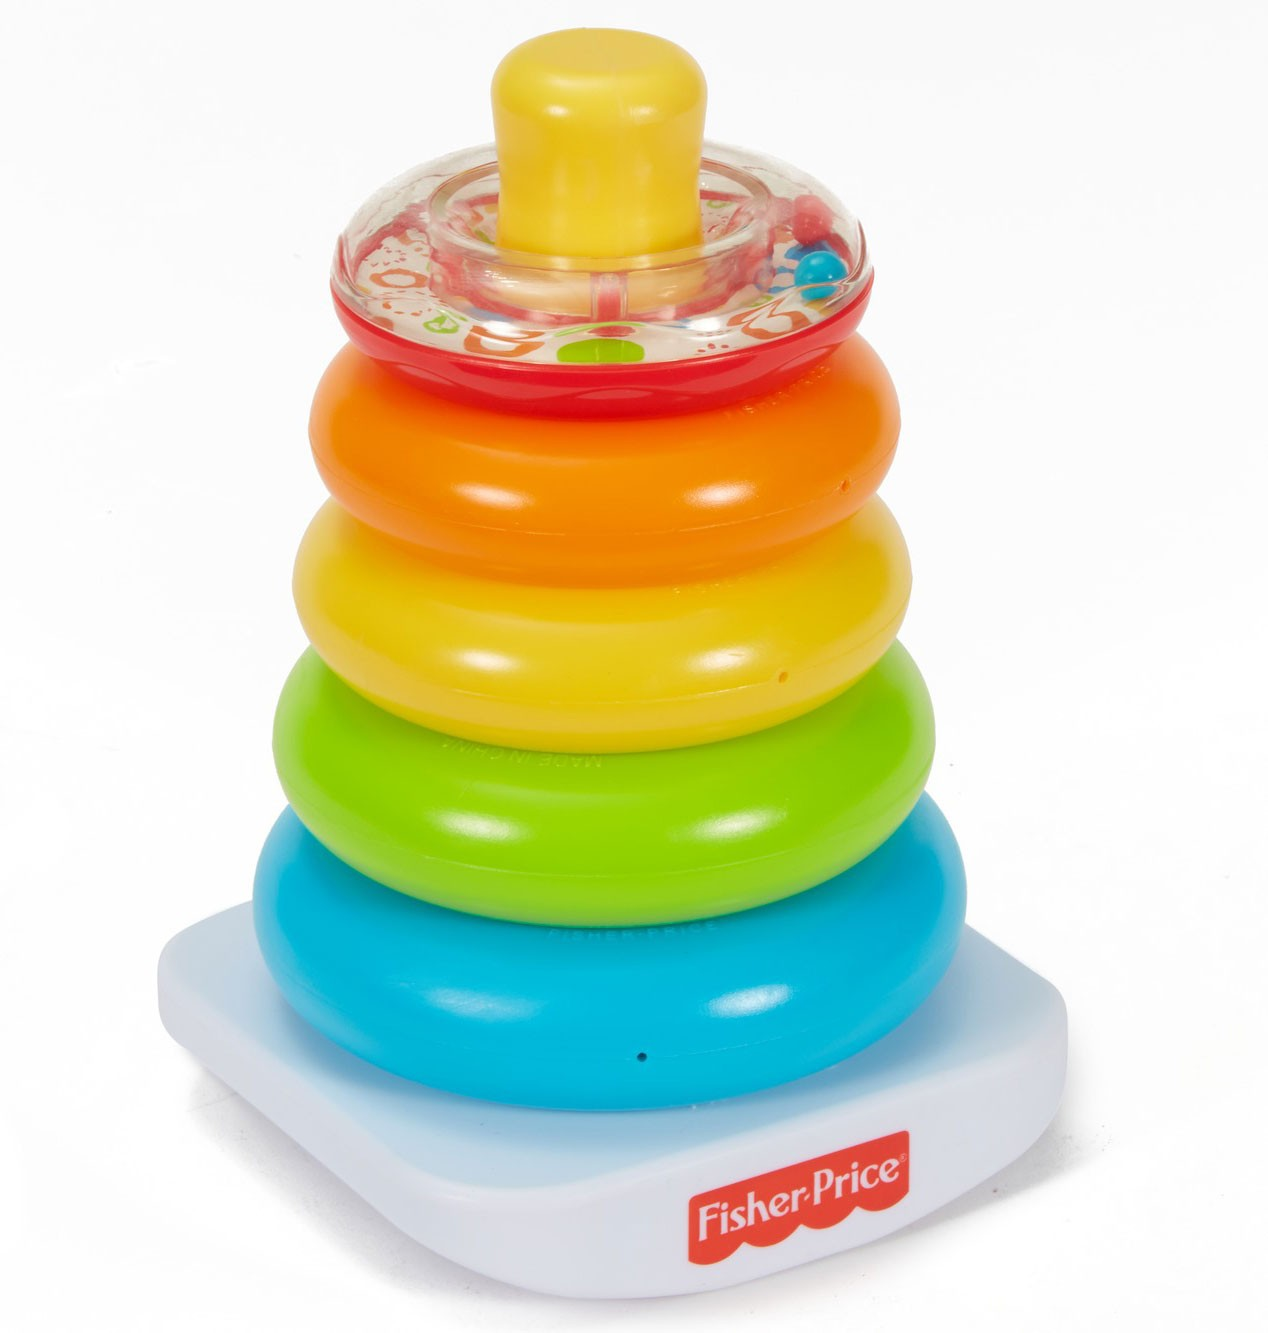 Fisher-Price. ПирамидкаСортеры, пирамидки<br>Fisher-Price. Пирамидка<br>